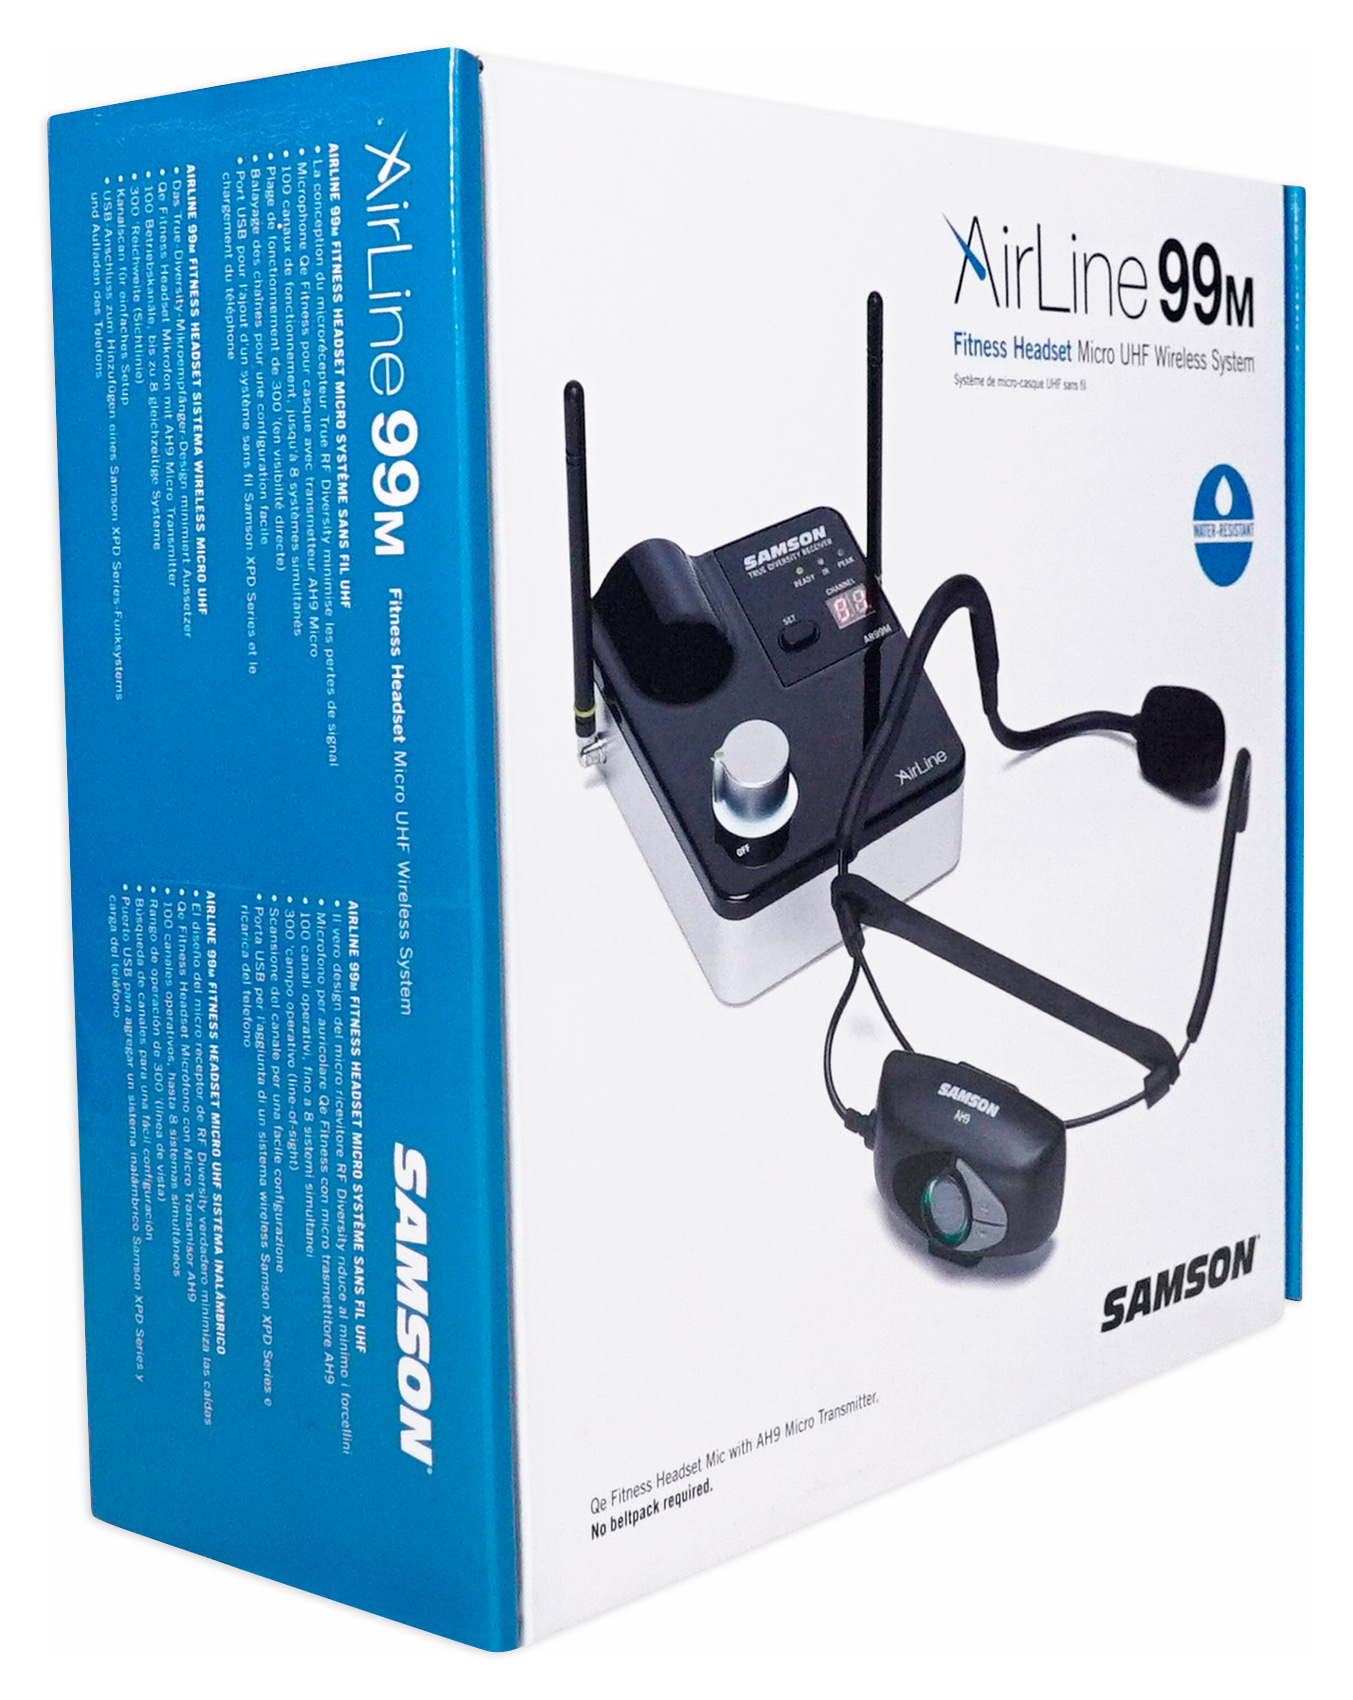 Samson Airline 99m Ah9 Wireless Uhf Rechargeable Fitness Headset